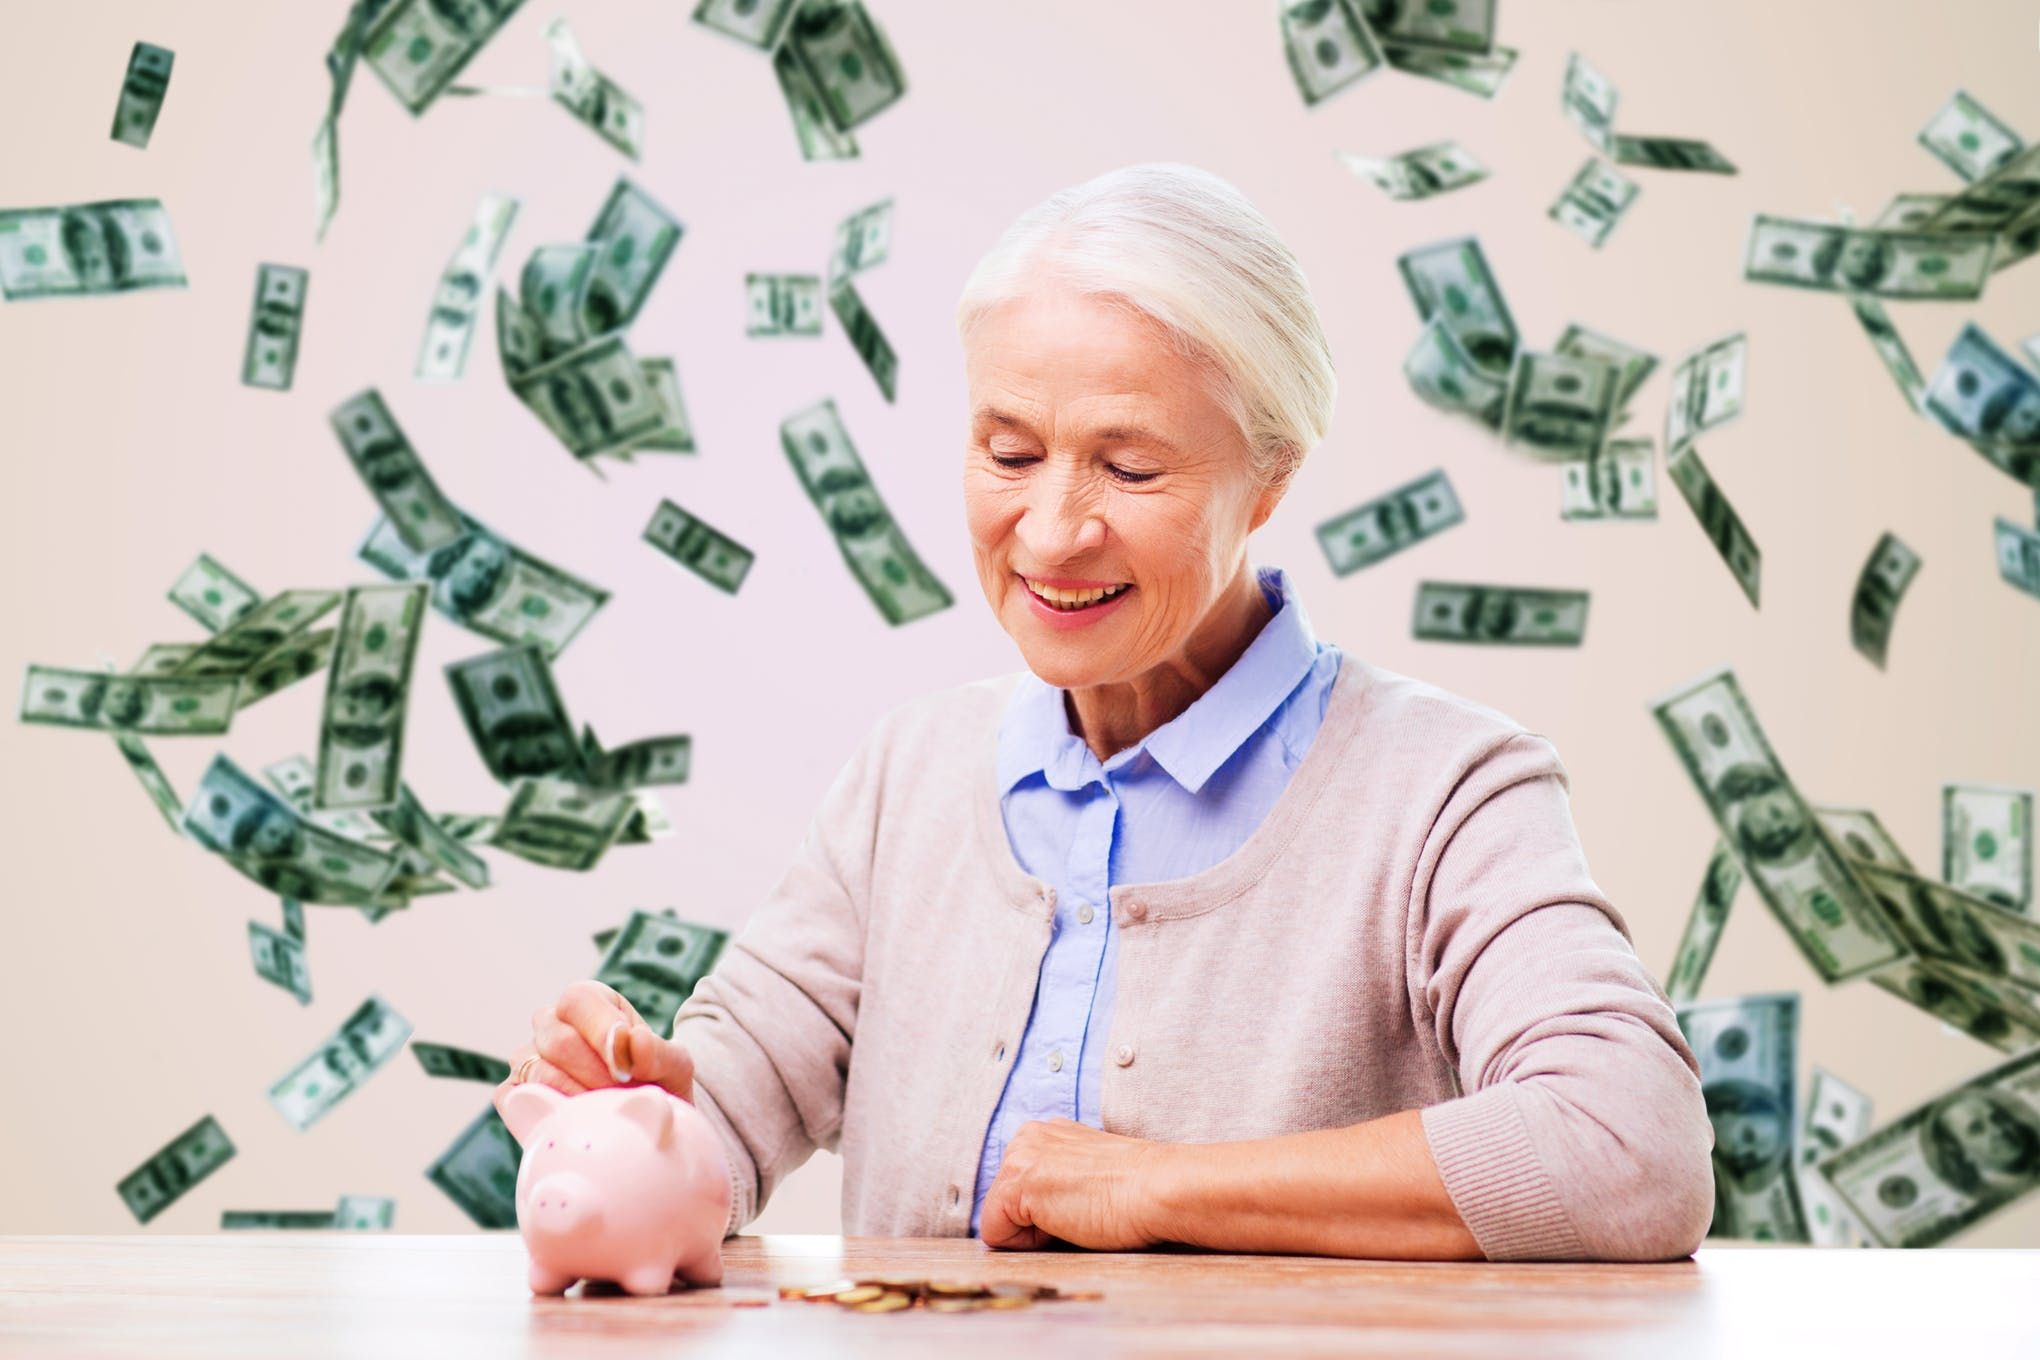 2Minute Money Manager Should I Buy an Annuity? Annuity